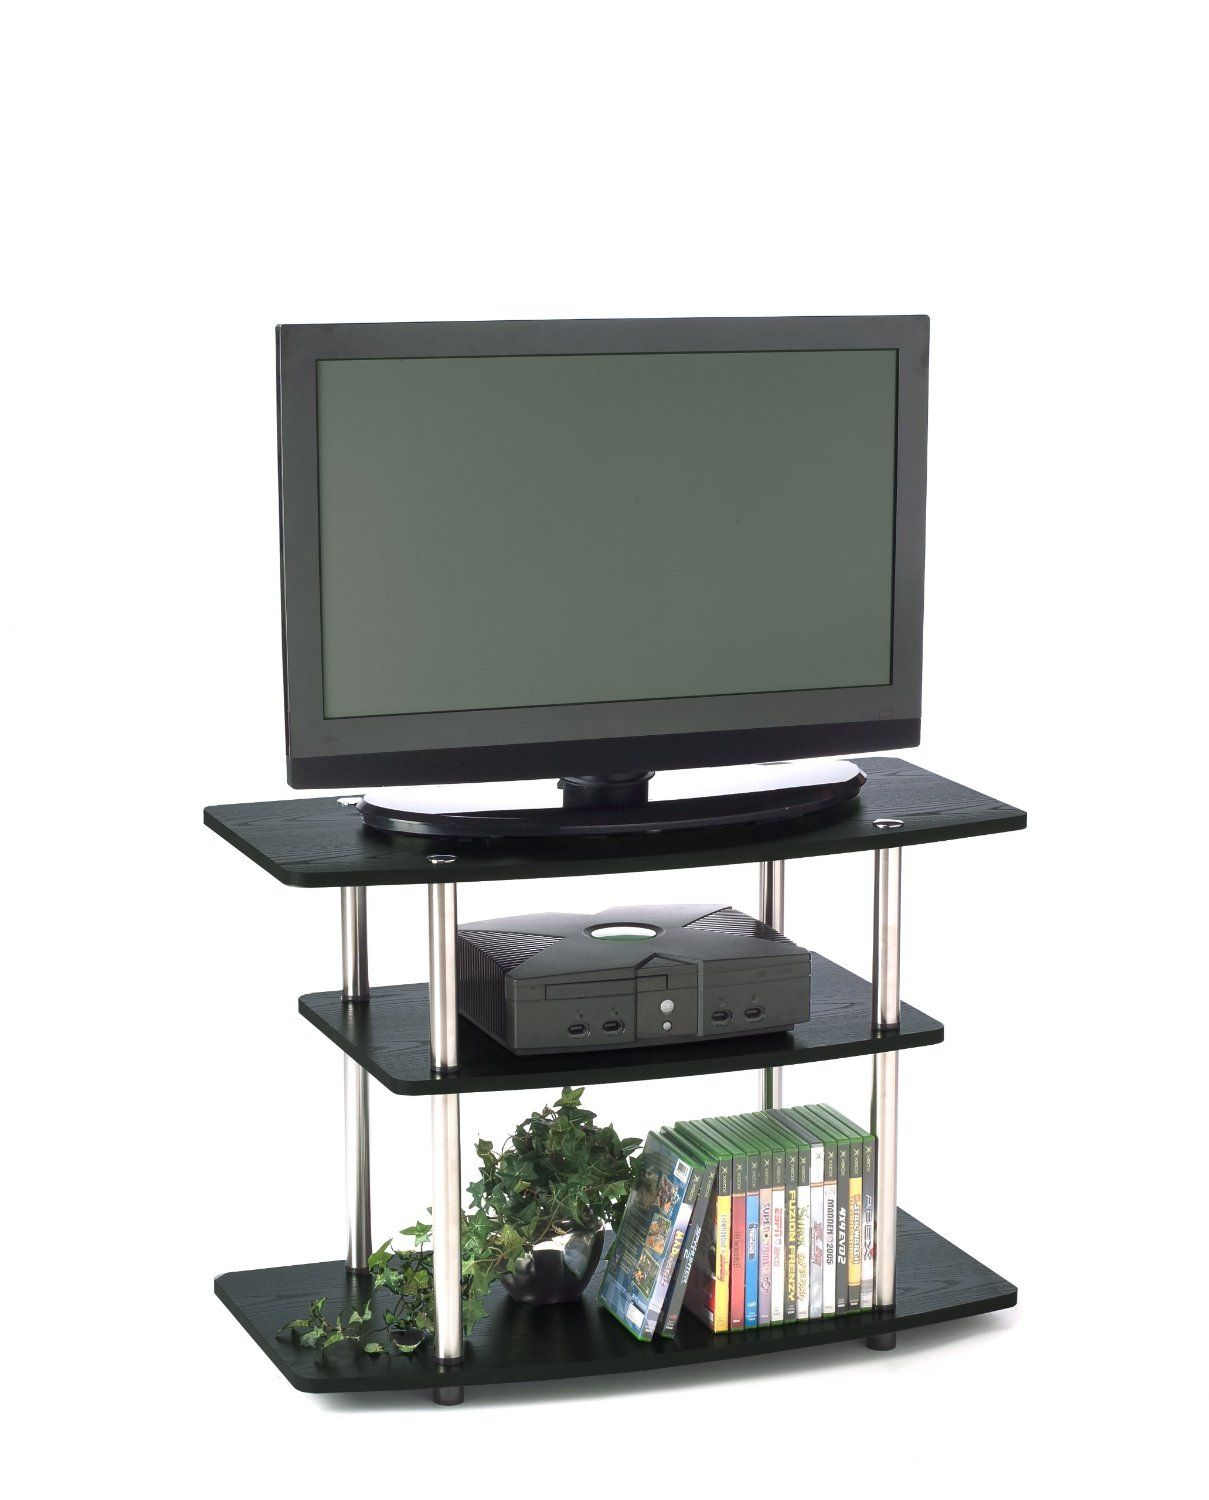 Modular Tv Stands Are Compact Tv Stands That Simply Have A Specific